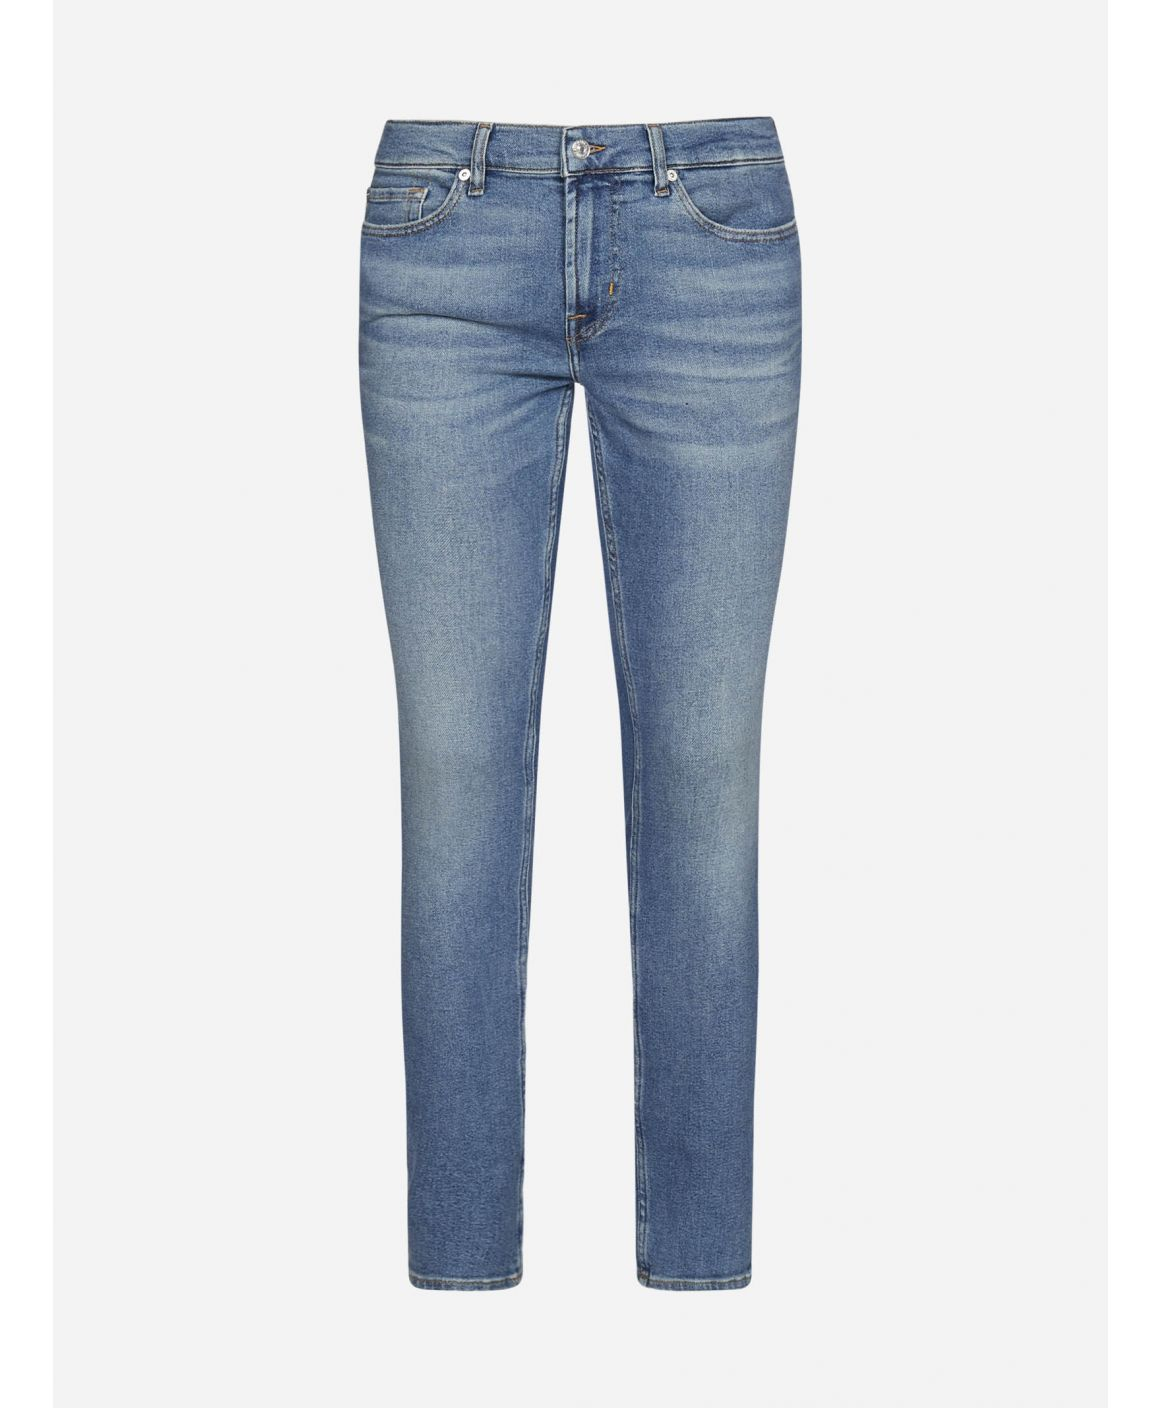 Ronnie Luxe Vintage jeans